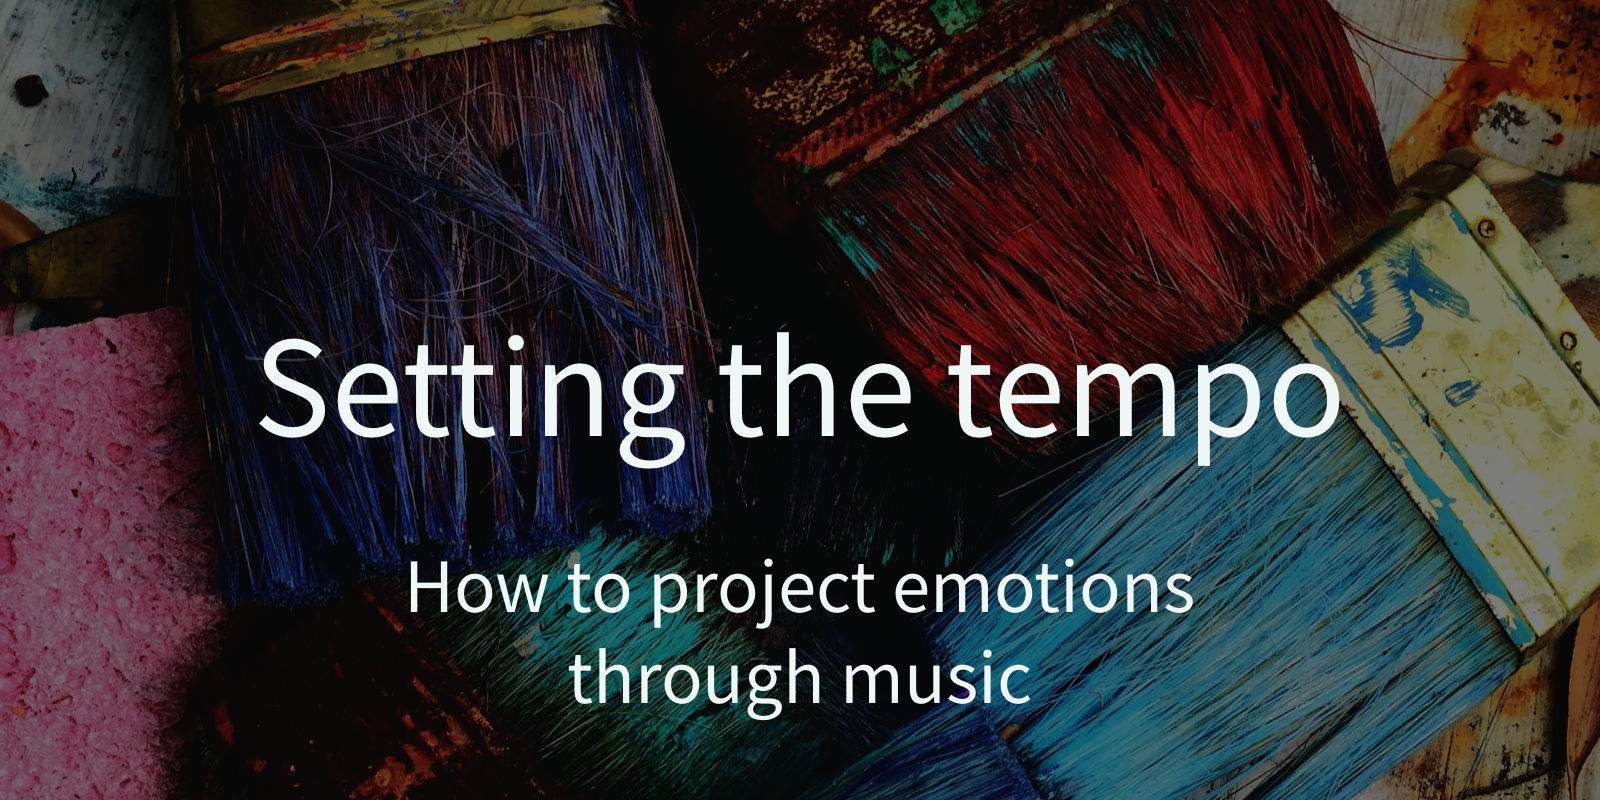 How to project emotions through music: setting the tempo